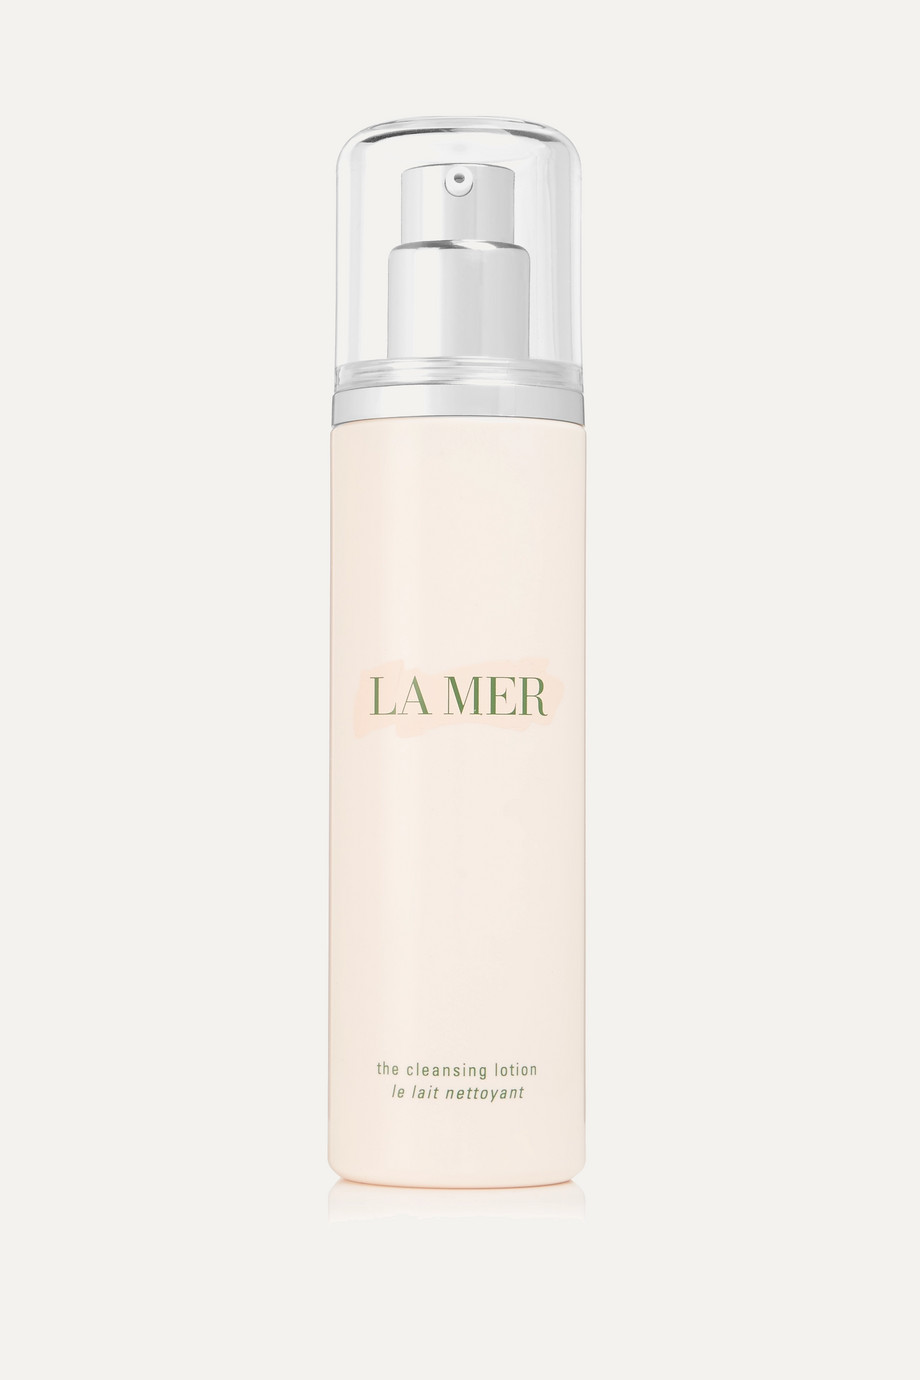 La Mer The Cleansing Lotion, 200ml